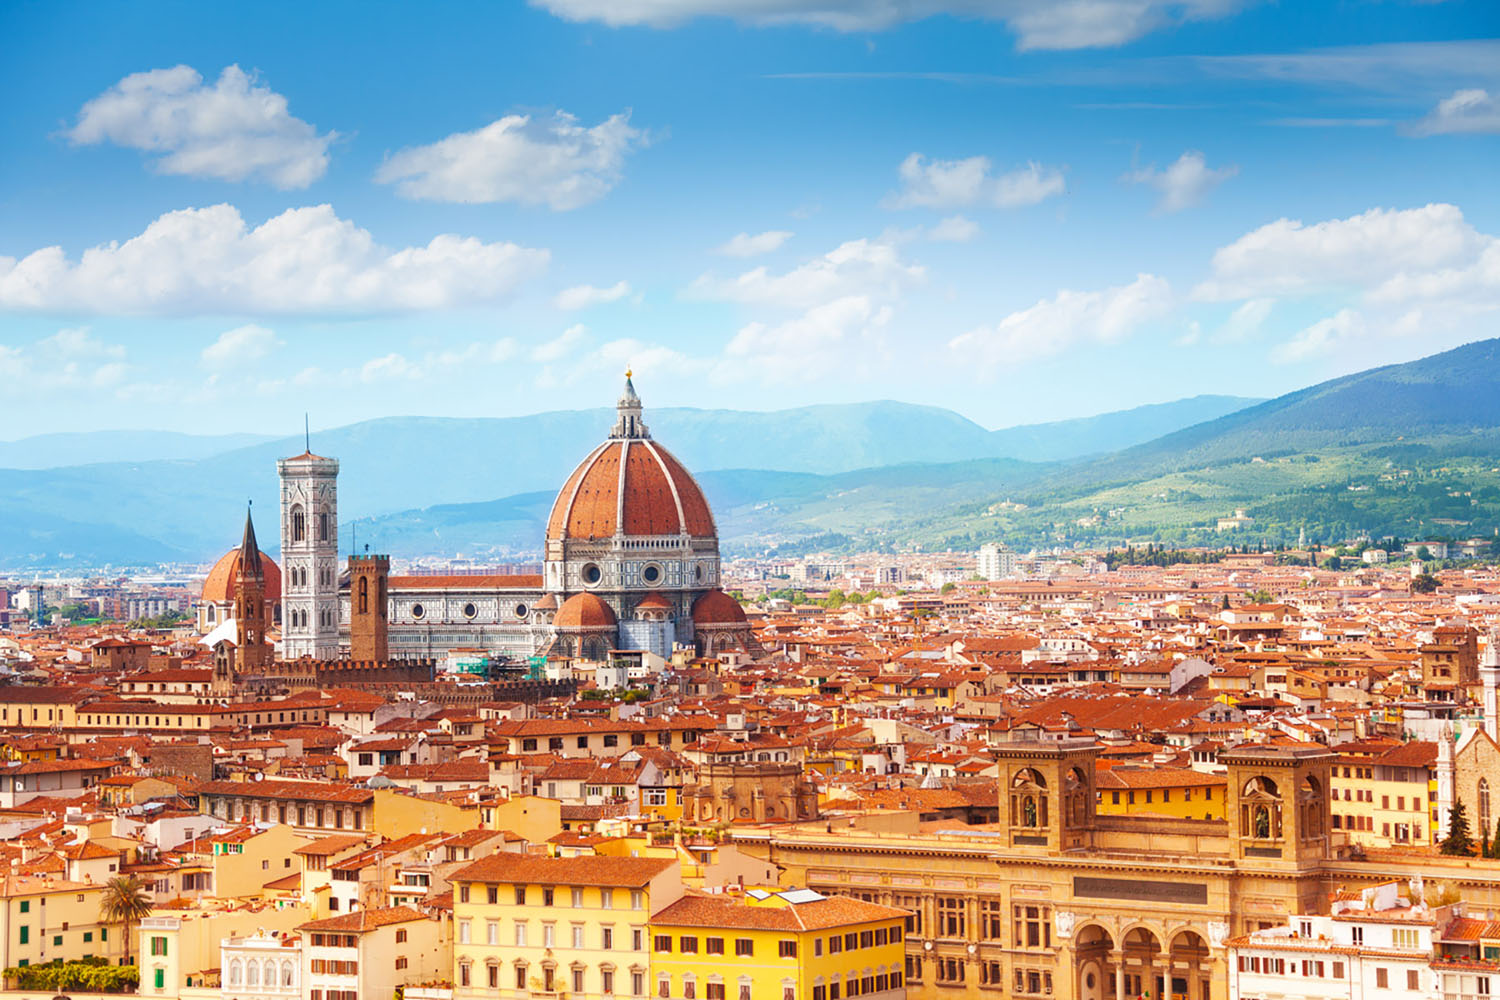 A skyline view of Florence, Italy.